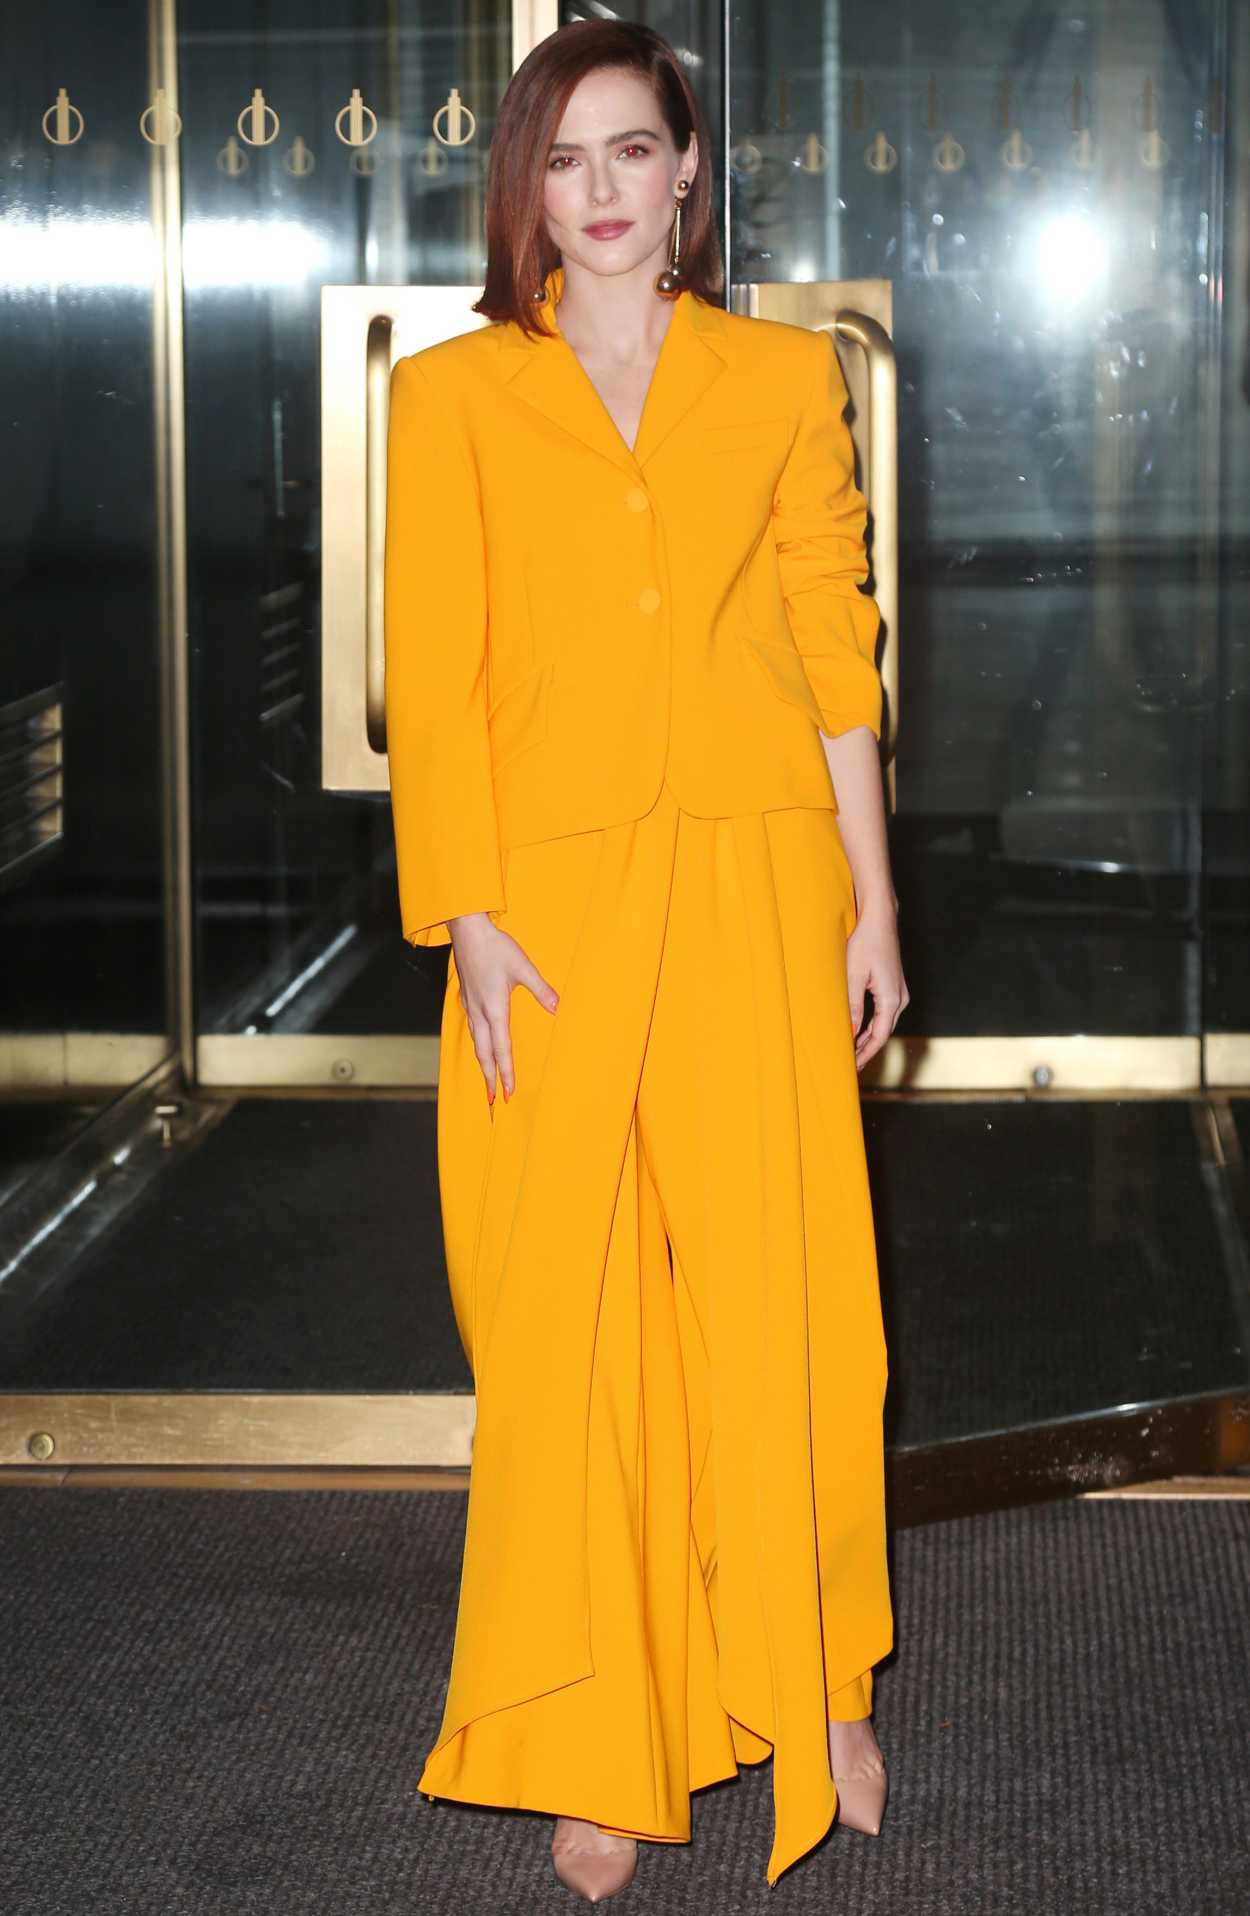 Zoey Deutch in a Yellow Suit